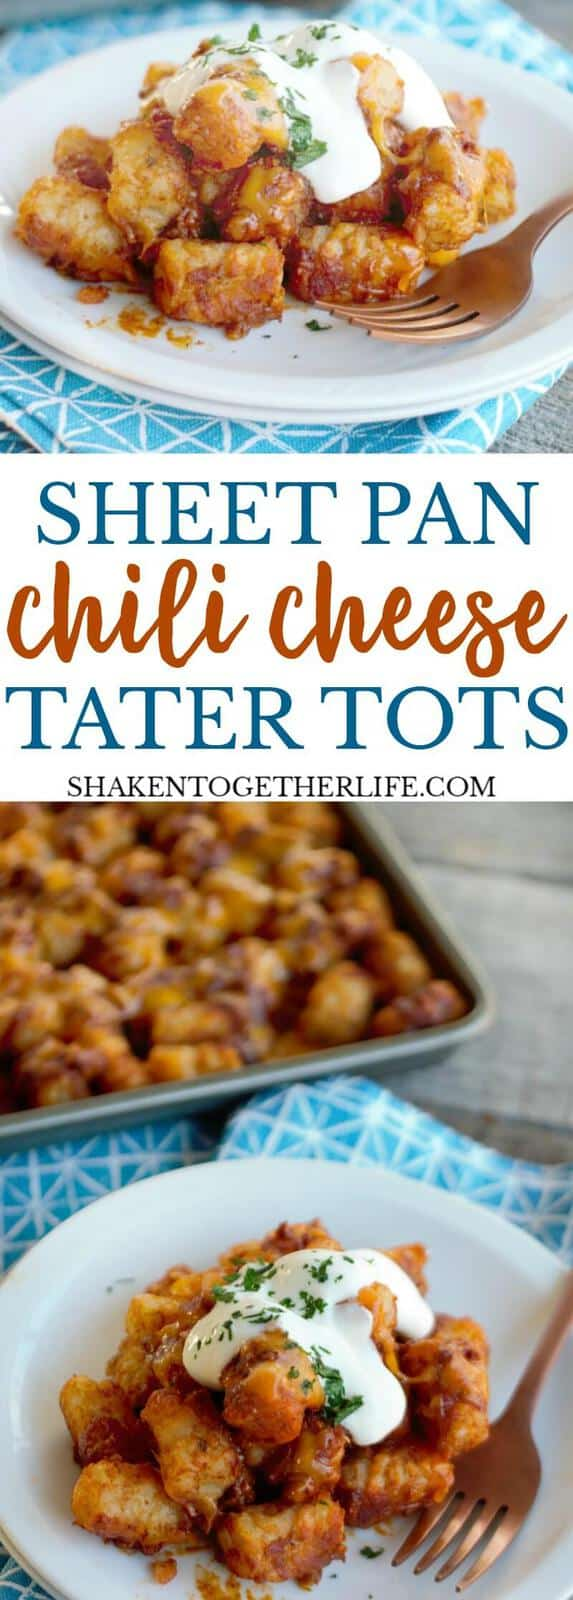 Ooey gooey cheesy Sheet Pan Chili Cheese Tater Tots are the perfect game day comfort food! Load them up with sour cream and chives, crumbled bacon or even drizzle them with your favorite BBQ sauce!